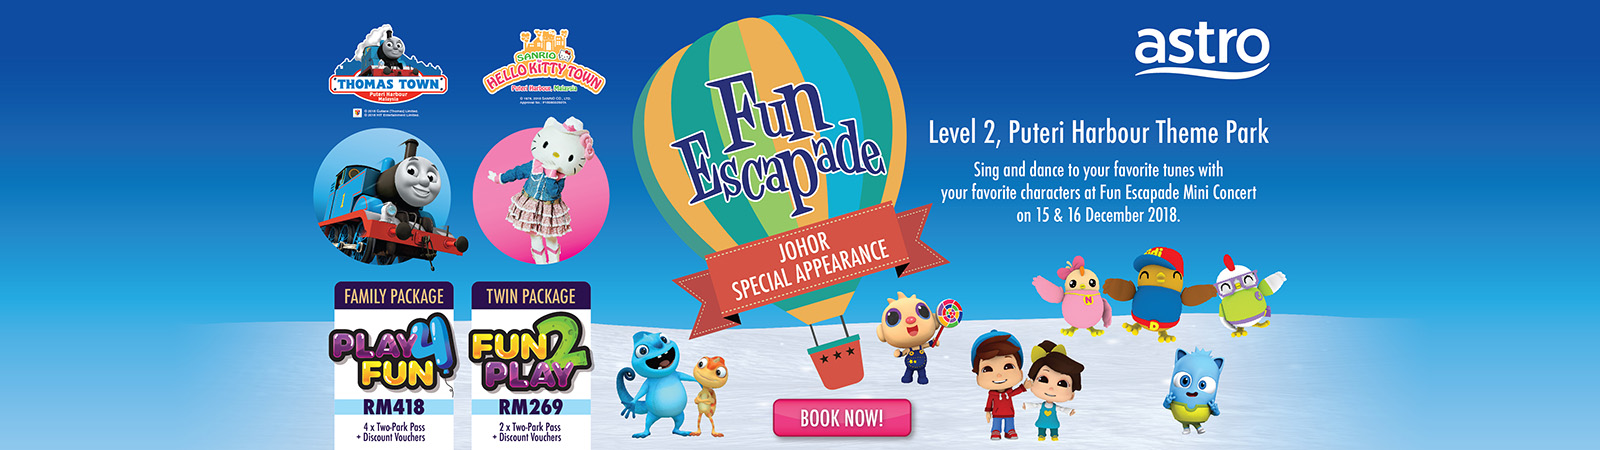 Fun Escapade is making Special Appearance in Johor!